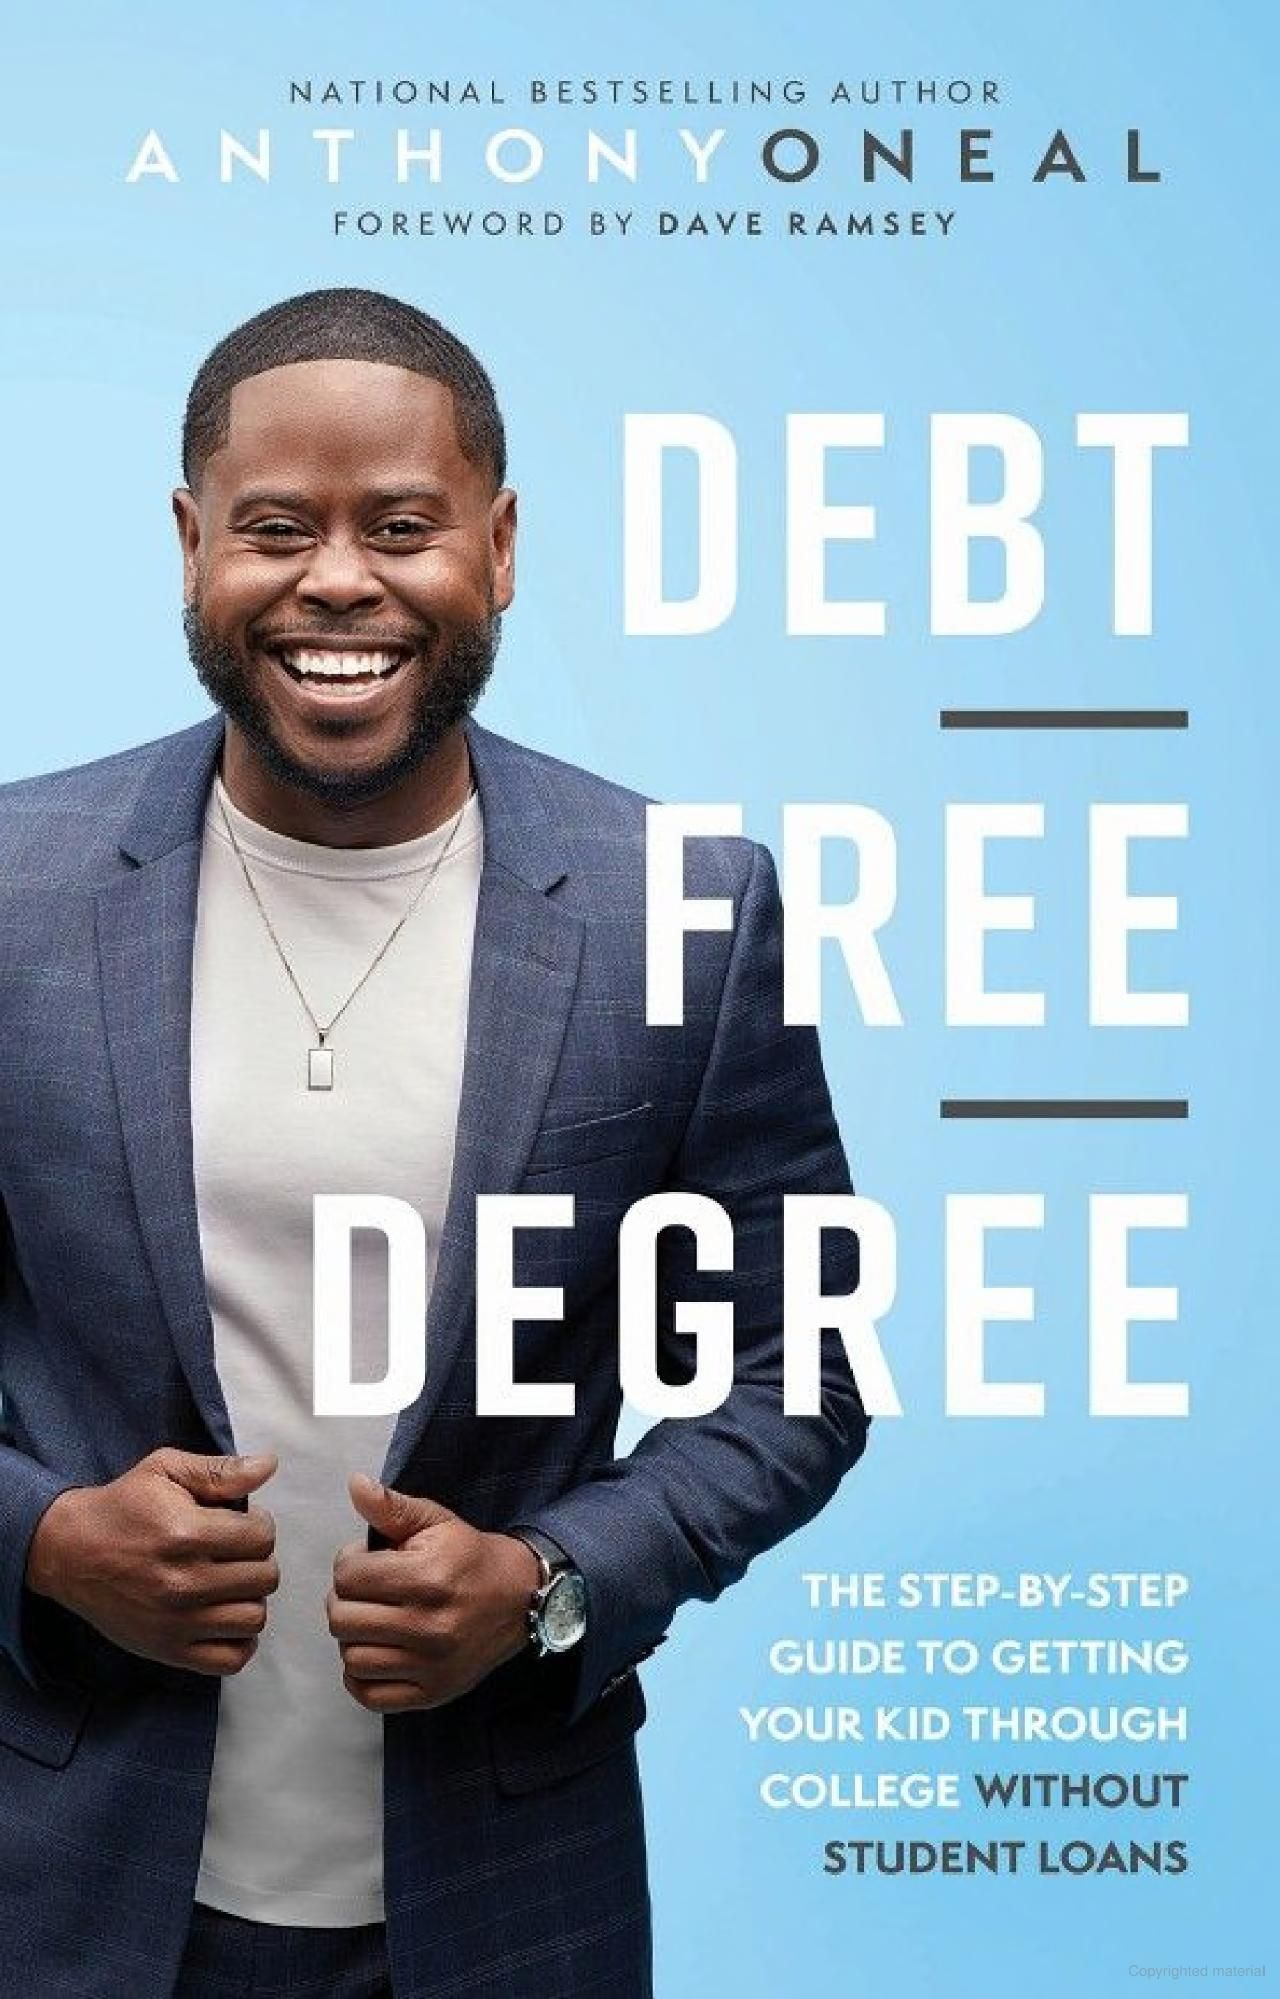 Debtfree degree the stepbystep guide to getting your